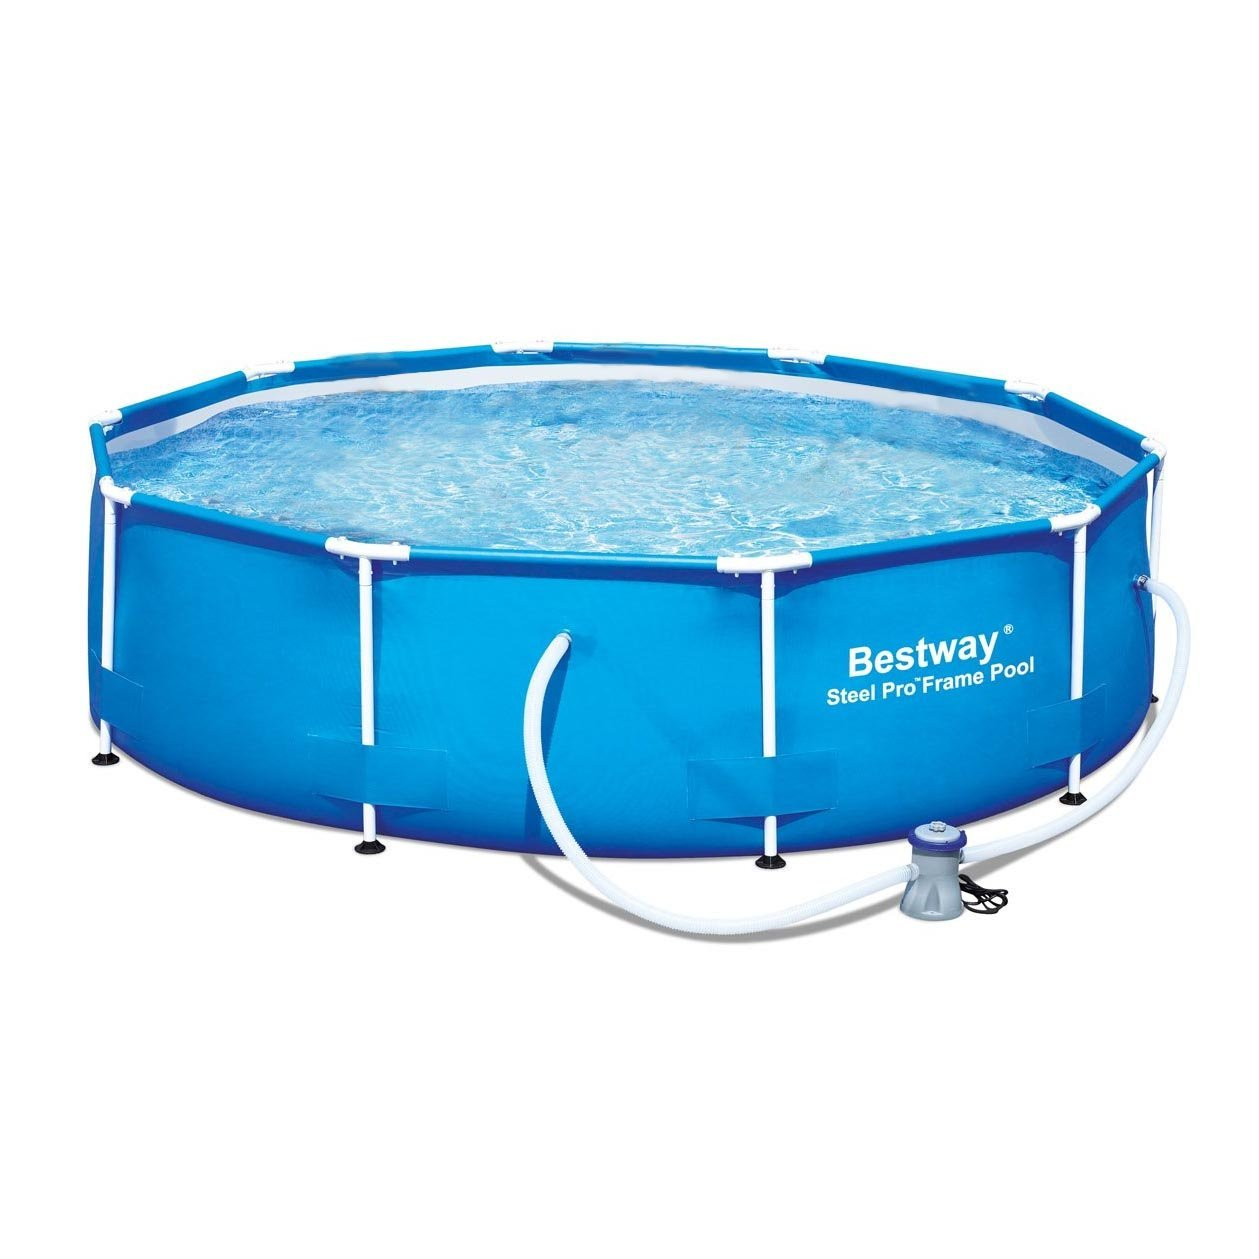 Bestway 12 39 x 36 steel pro frame above ground family swimming pool set w pump whole pools for Swimming pool pumps for above ground pools